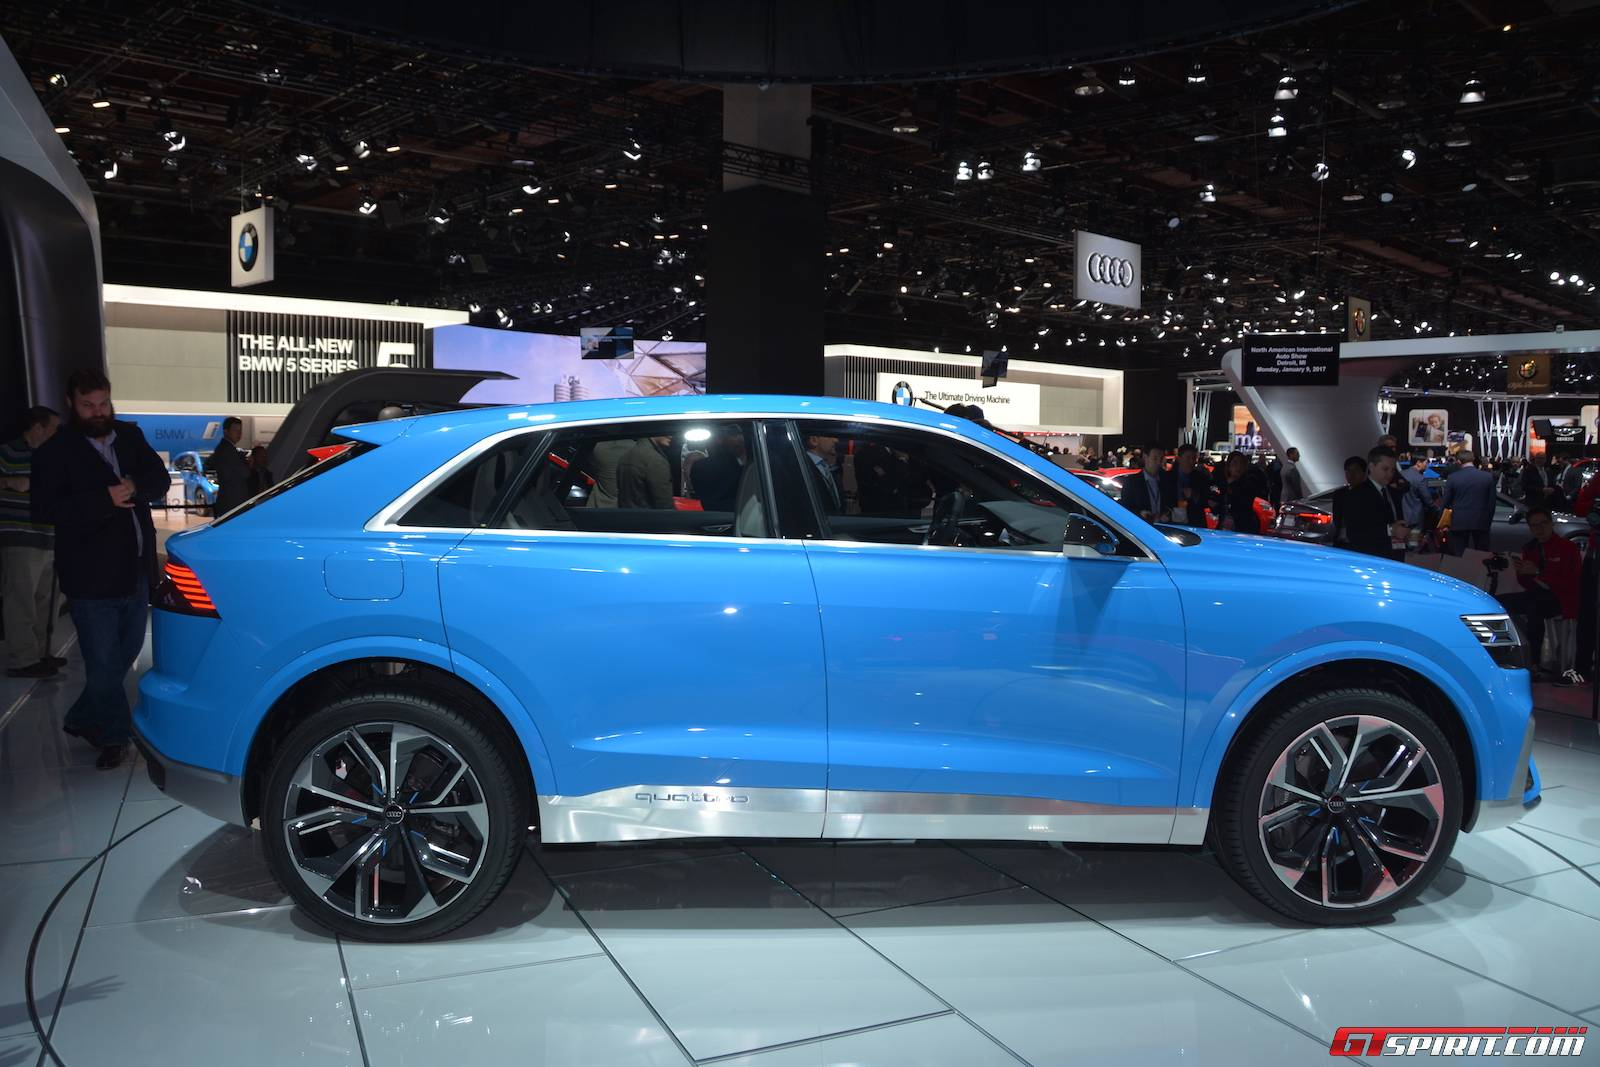 Tesla Solar Roof Launches Australia further Franklin bells further Detroit 2017 Audi Q8 Concept together with Specifications furthermore Electric Cars. on electric charge